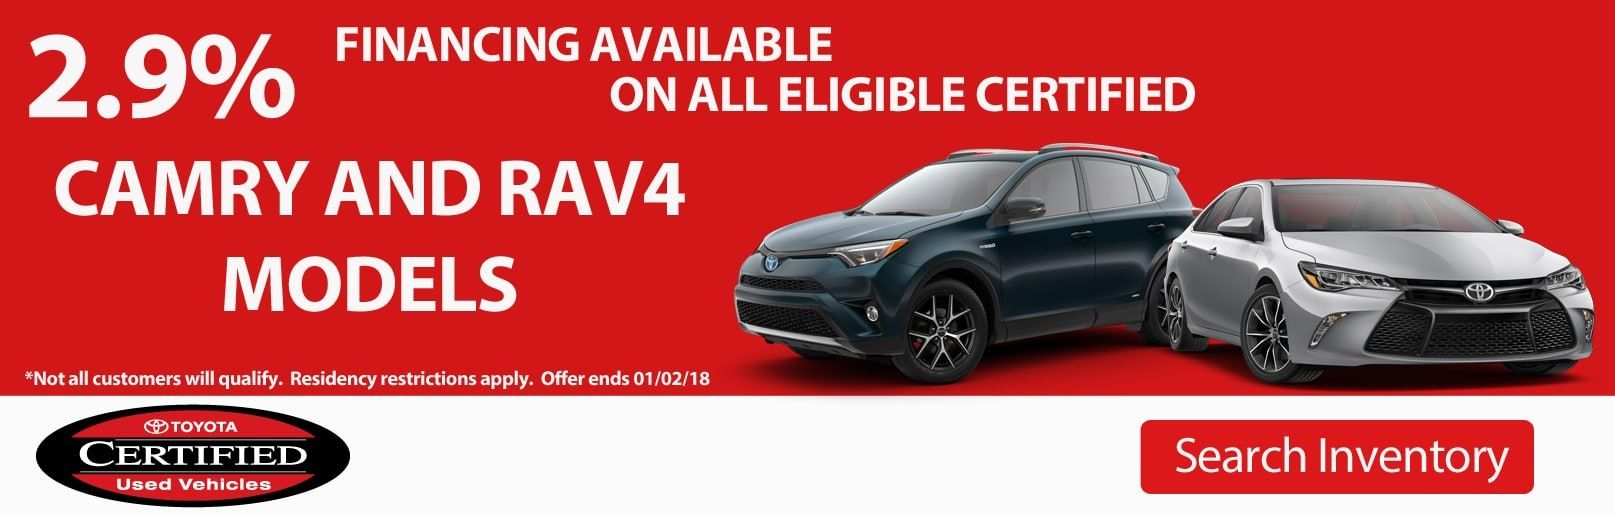 Kerry Toyota Used Cars